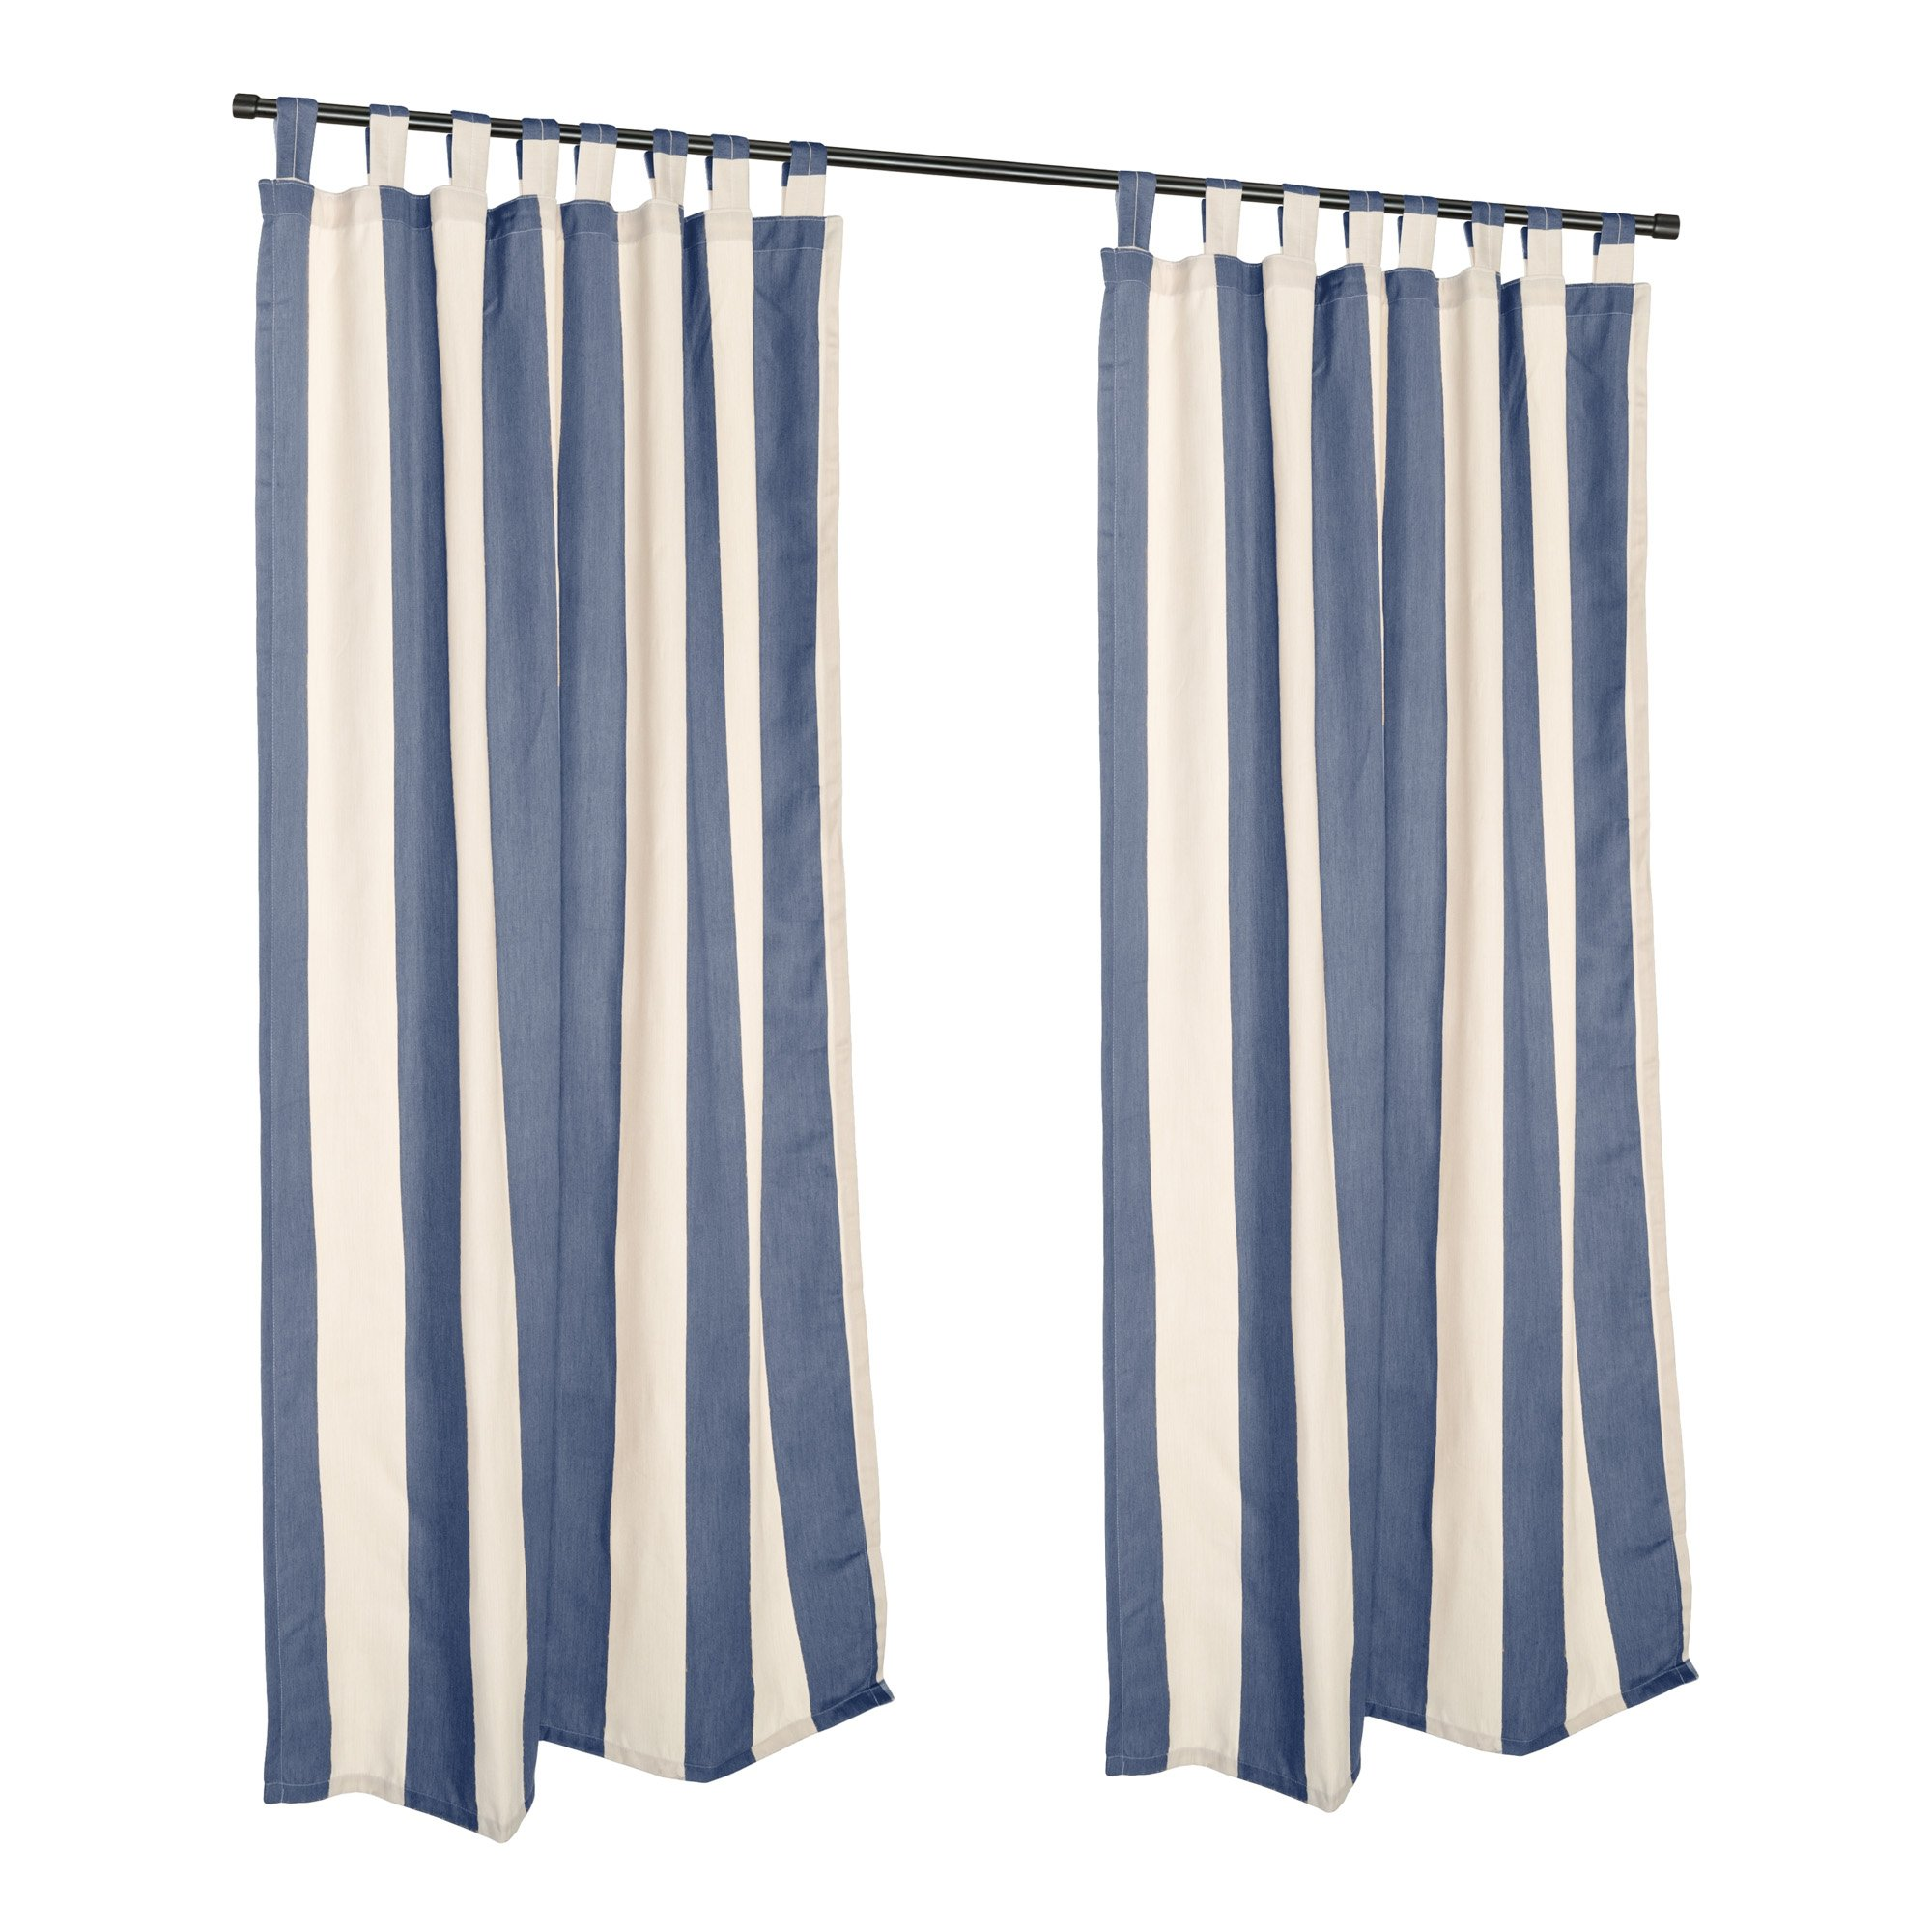 DFOHome Regency Indigo Sunbrella Tab Top Outdoor Curtain - 50'' W x 108'' L